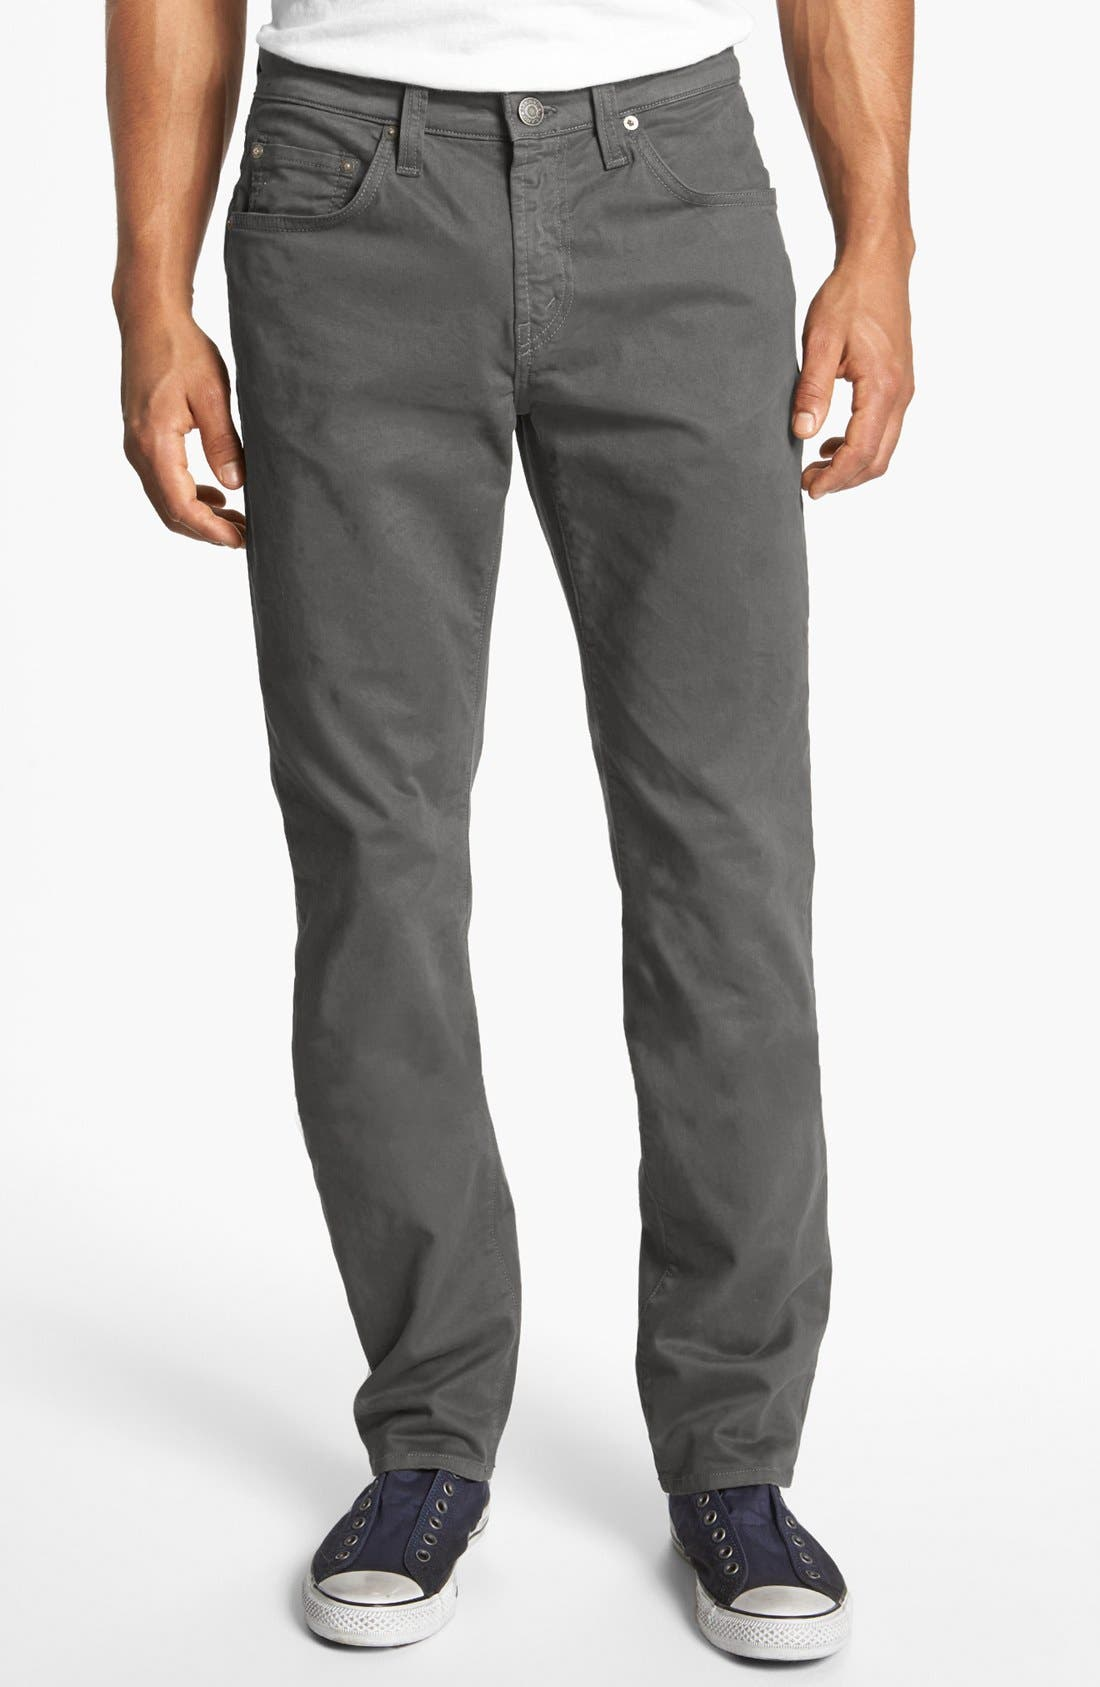 'Kane' Slim Fit Cotton Twill Pants,                         Main,                         color, Industrial